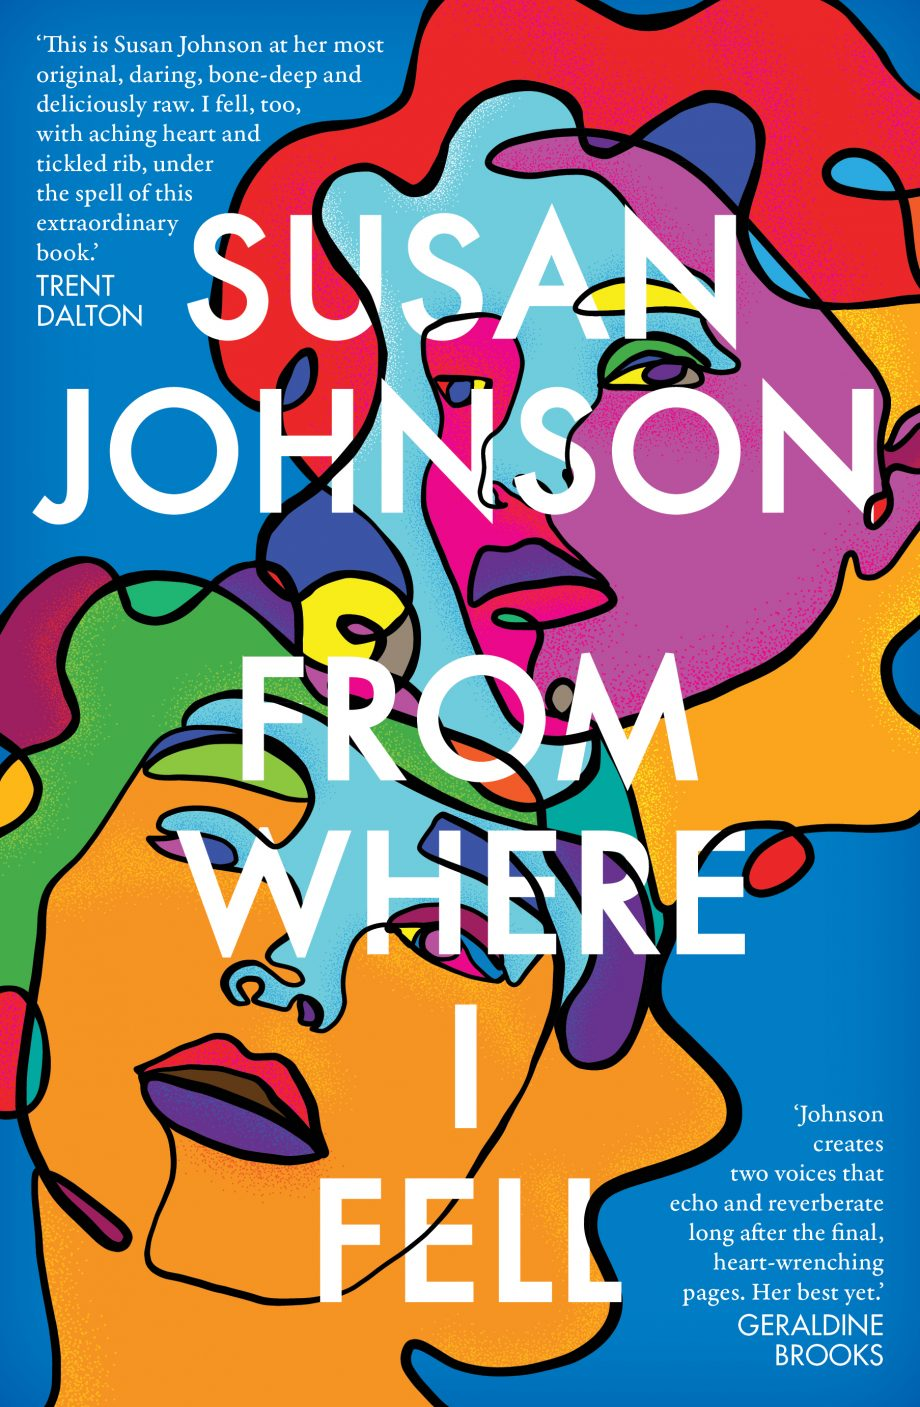 Book cover image: brightly coloured abstract picture of human faces. Text reads 'Susan Johnson, From Where I Fell'